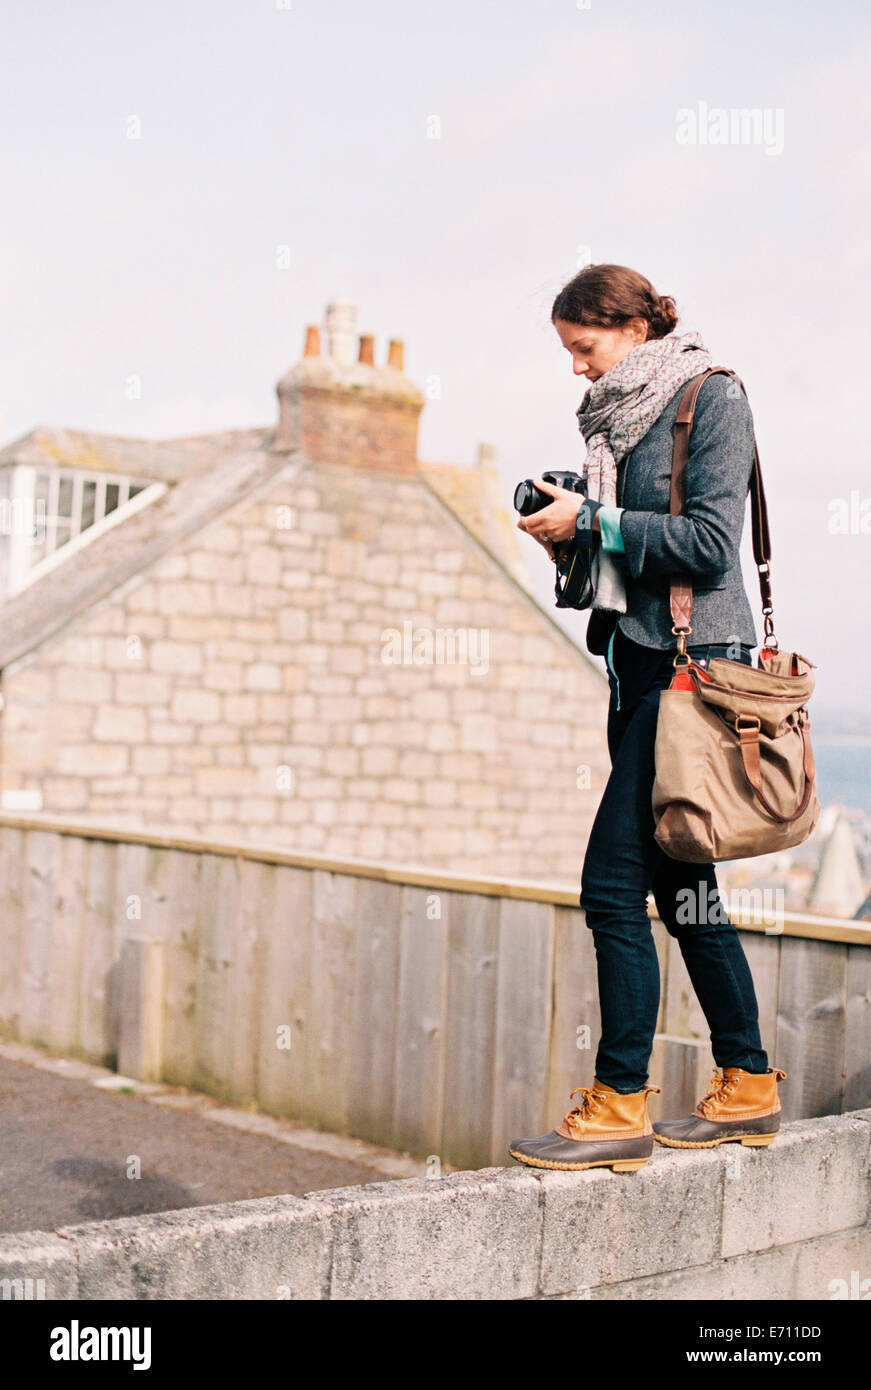 A woman with a large bag, holding a camera, standing on the top of a wall. - Stock Image